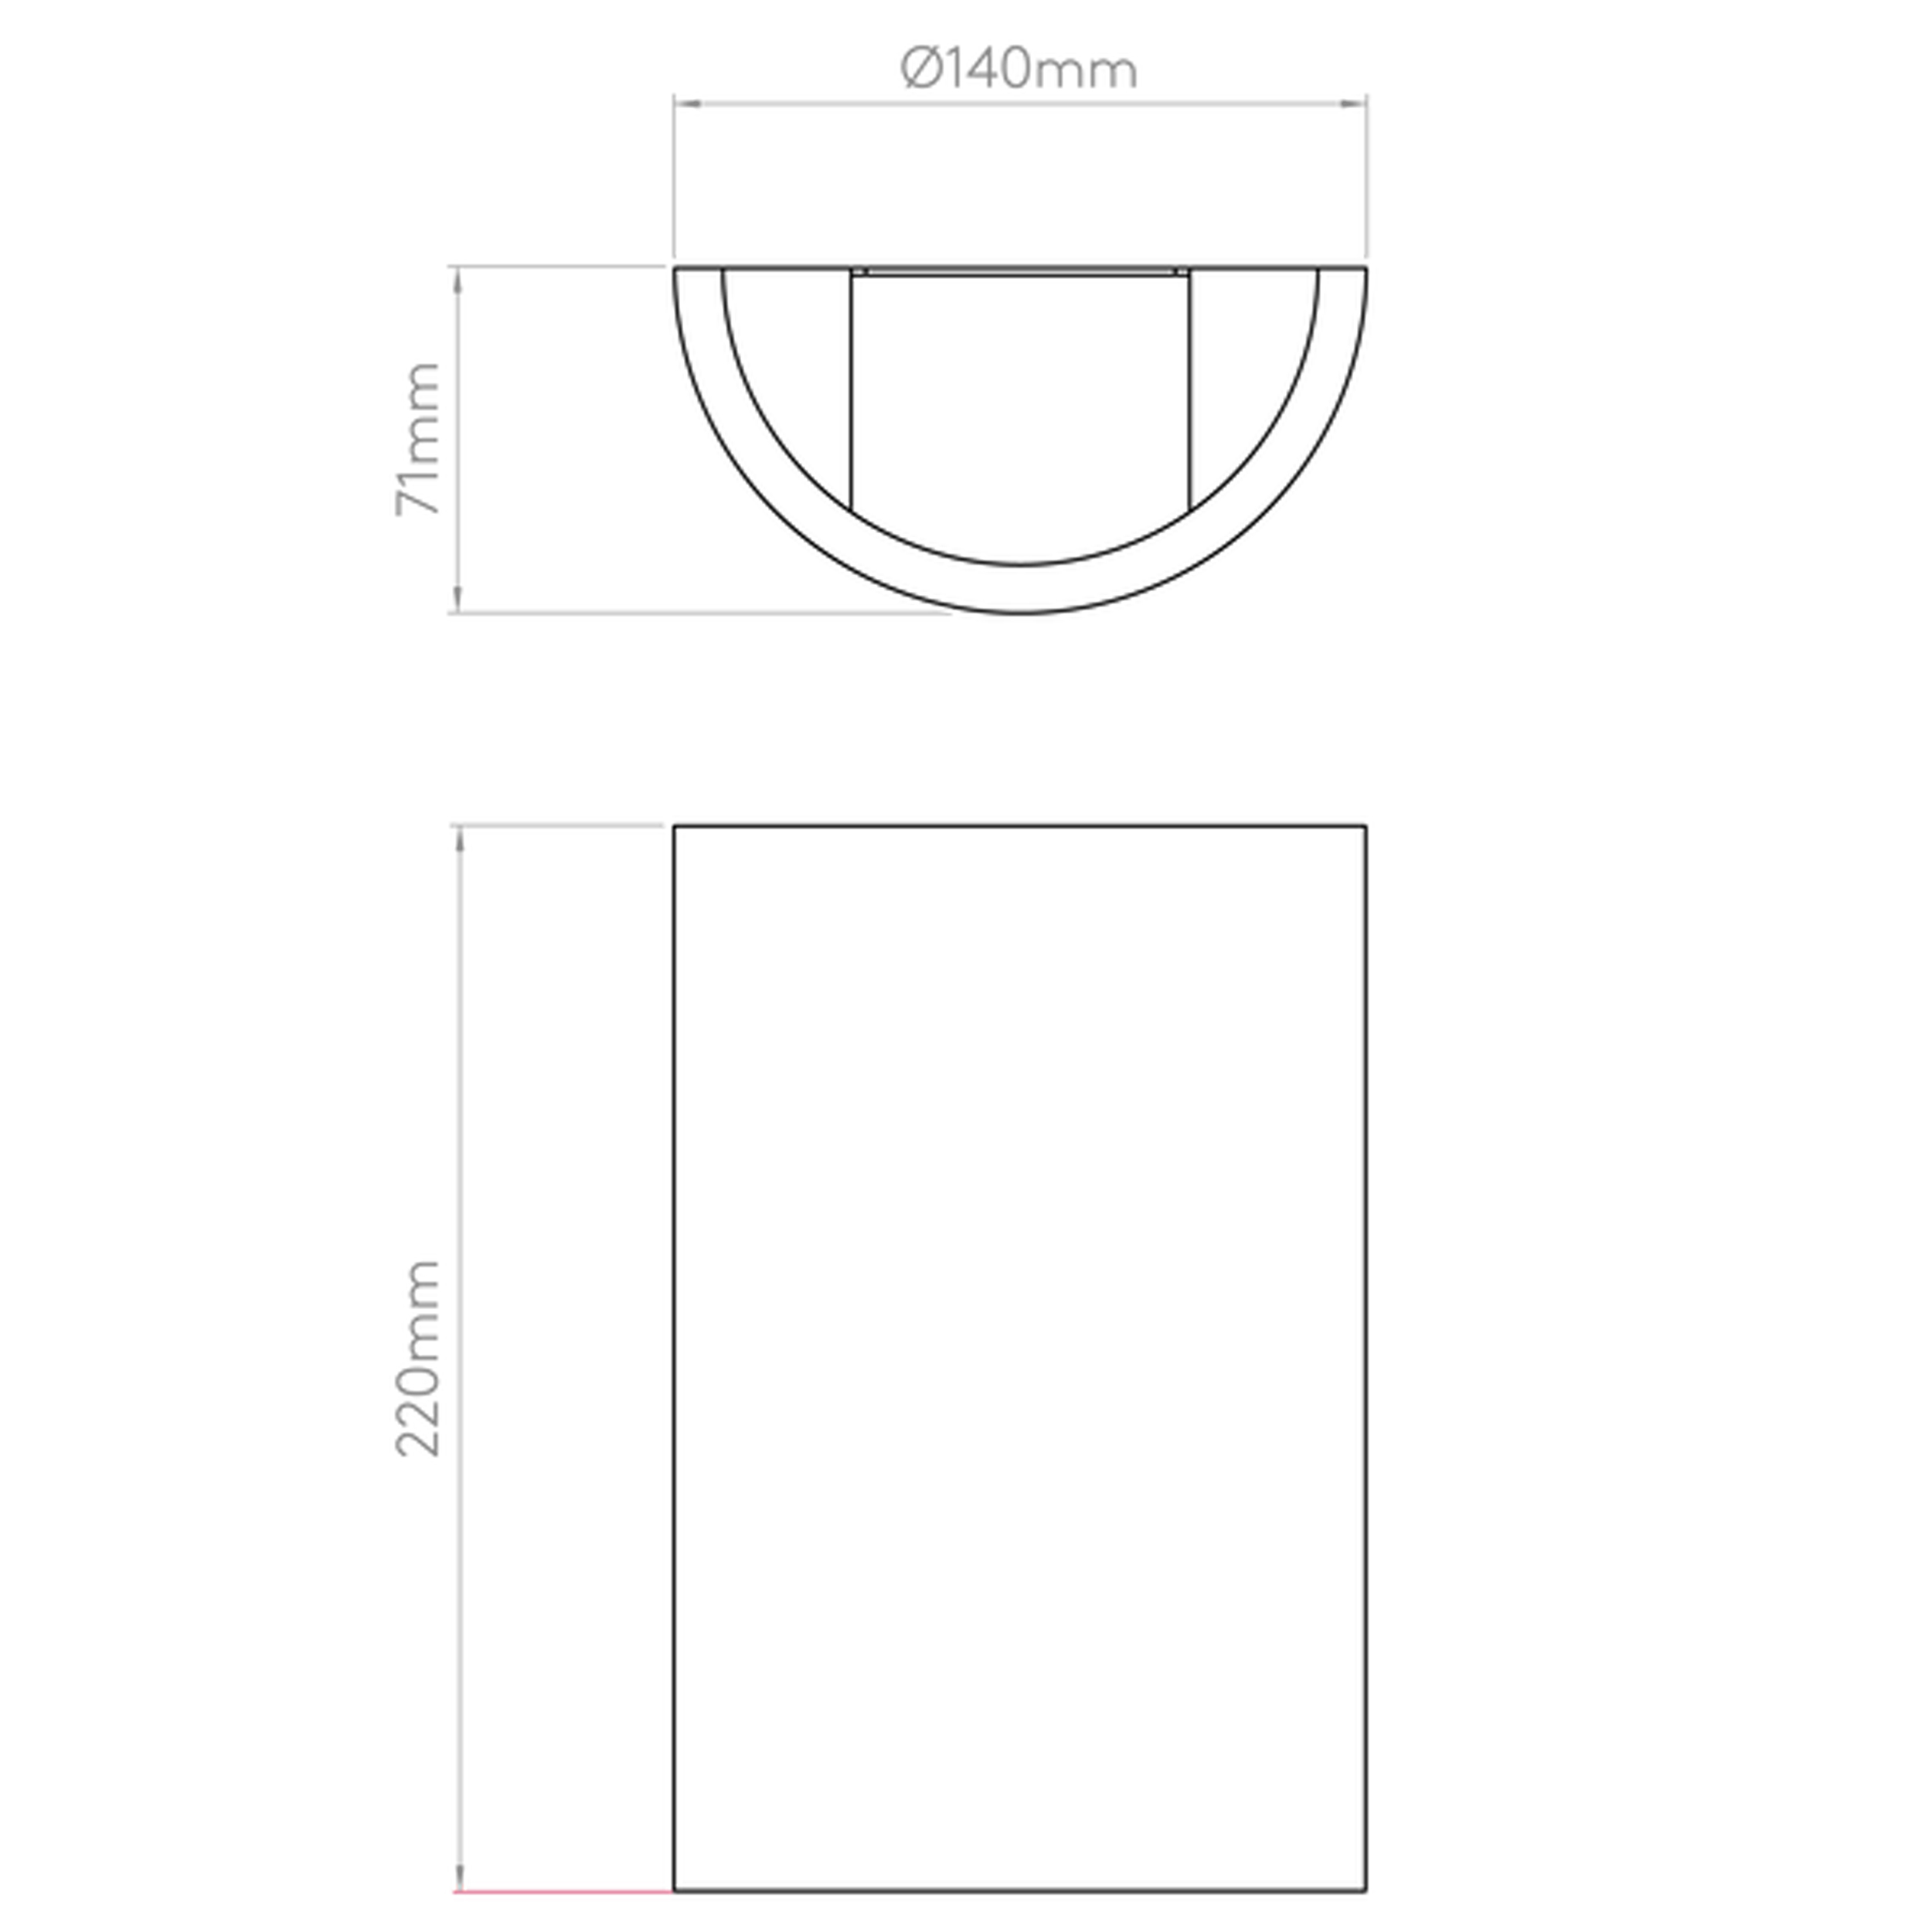 Astro Serifos 220 Wall Light Line Drawing